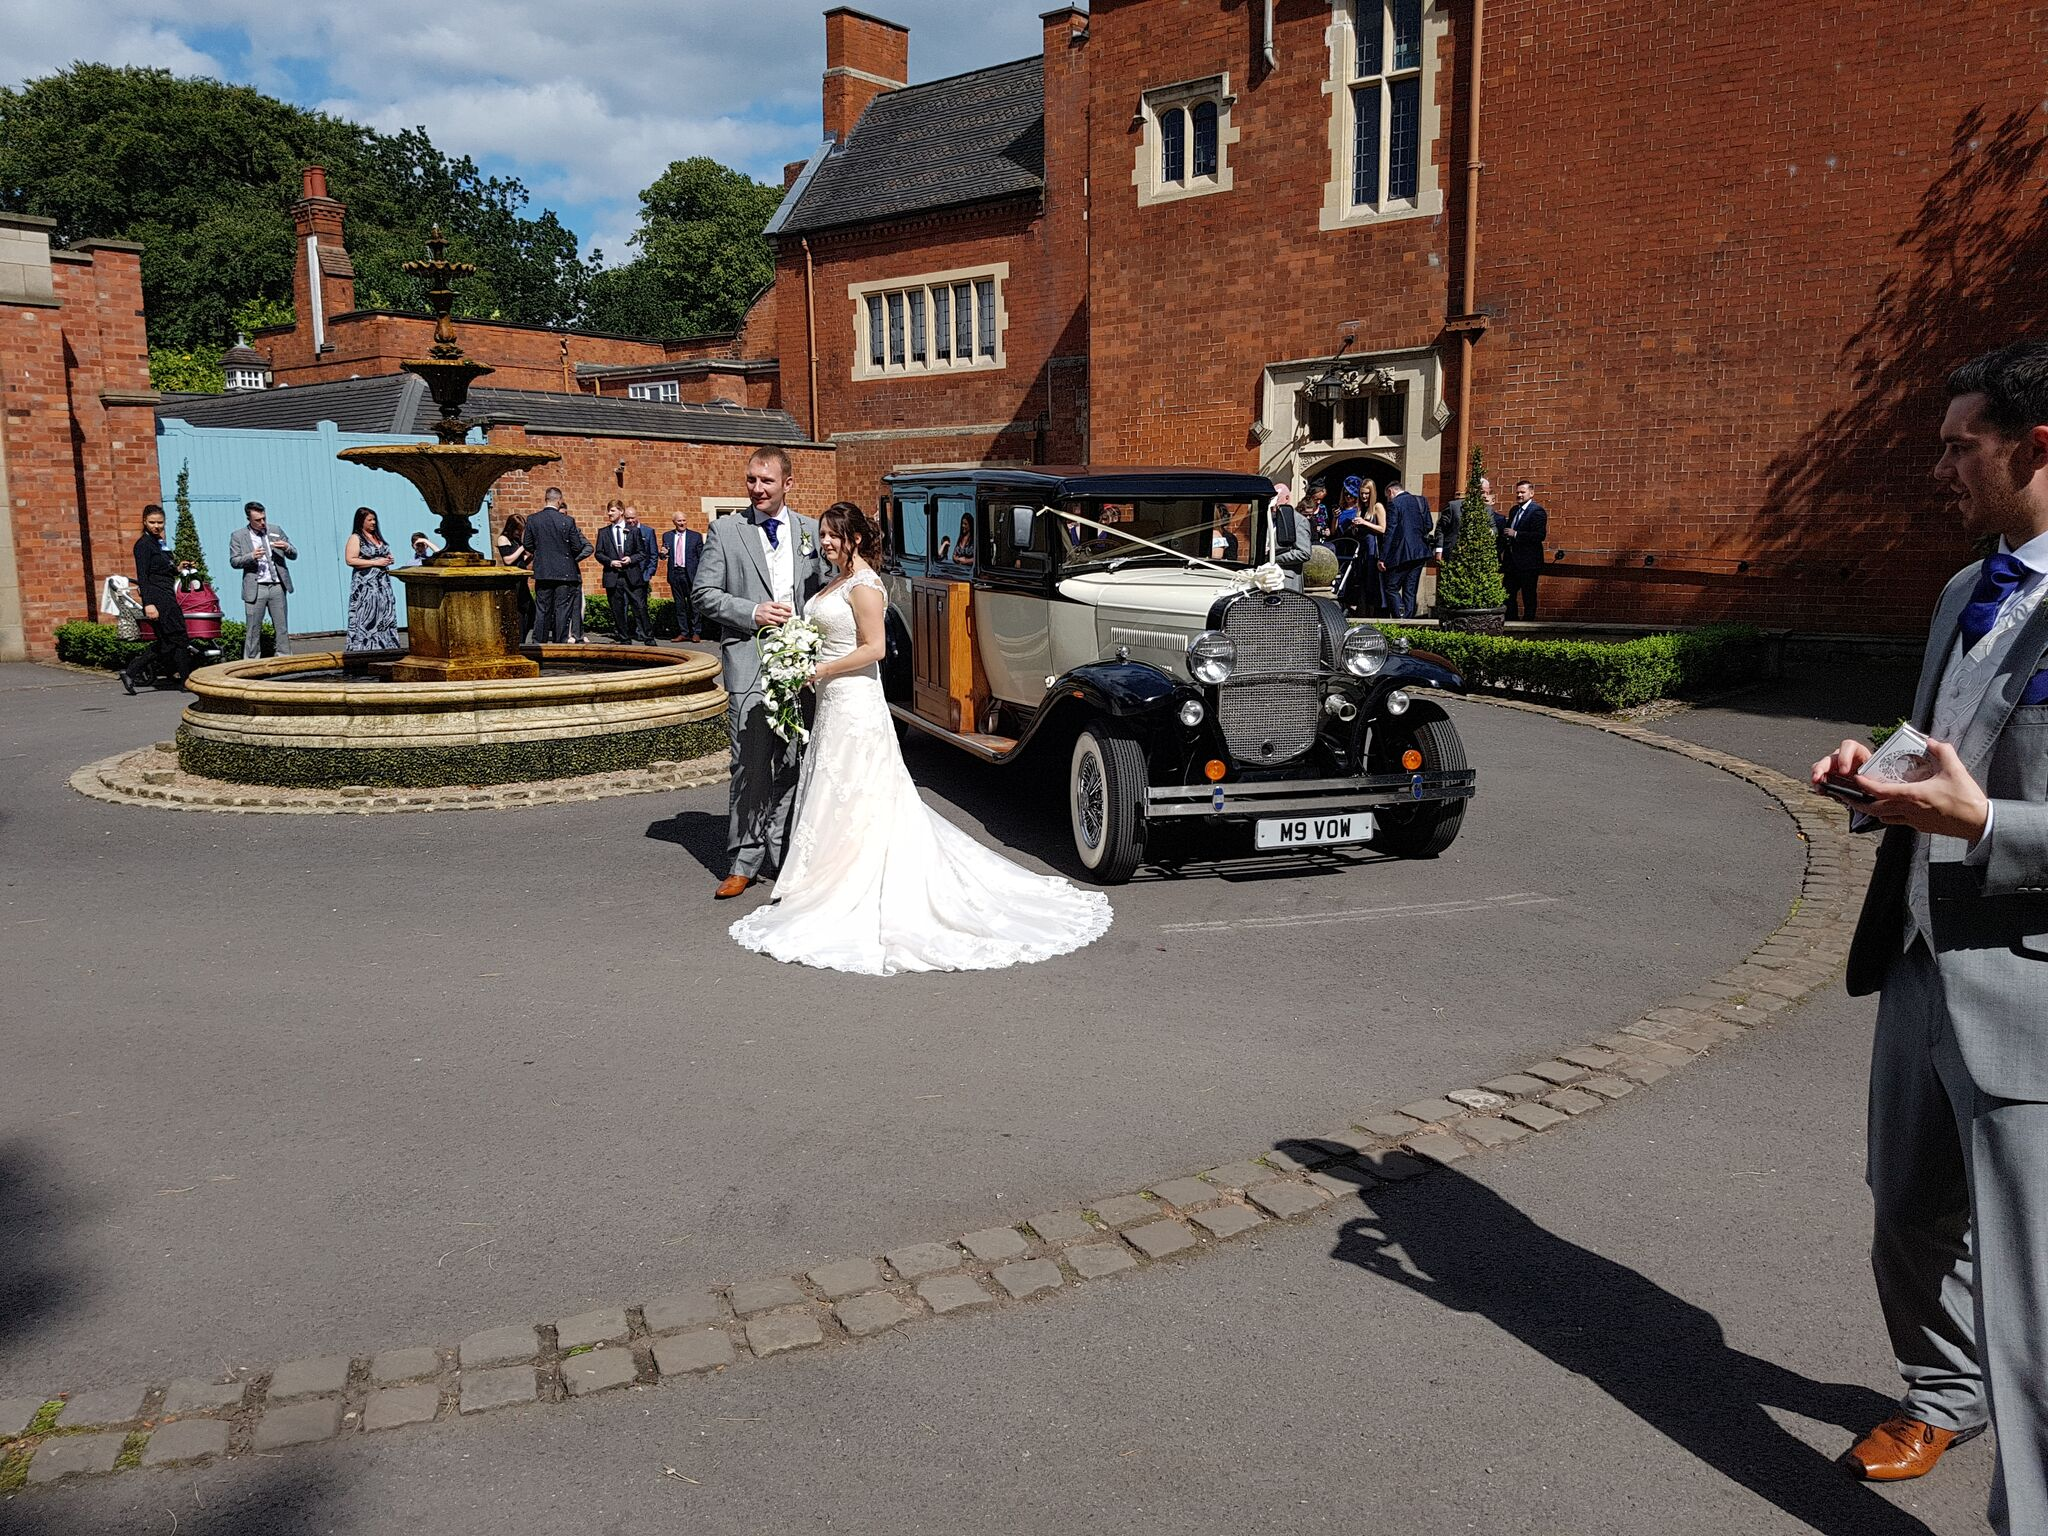 Madley wedding car hire.